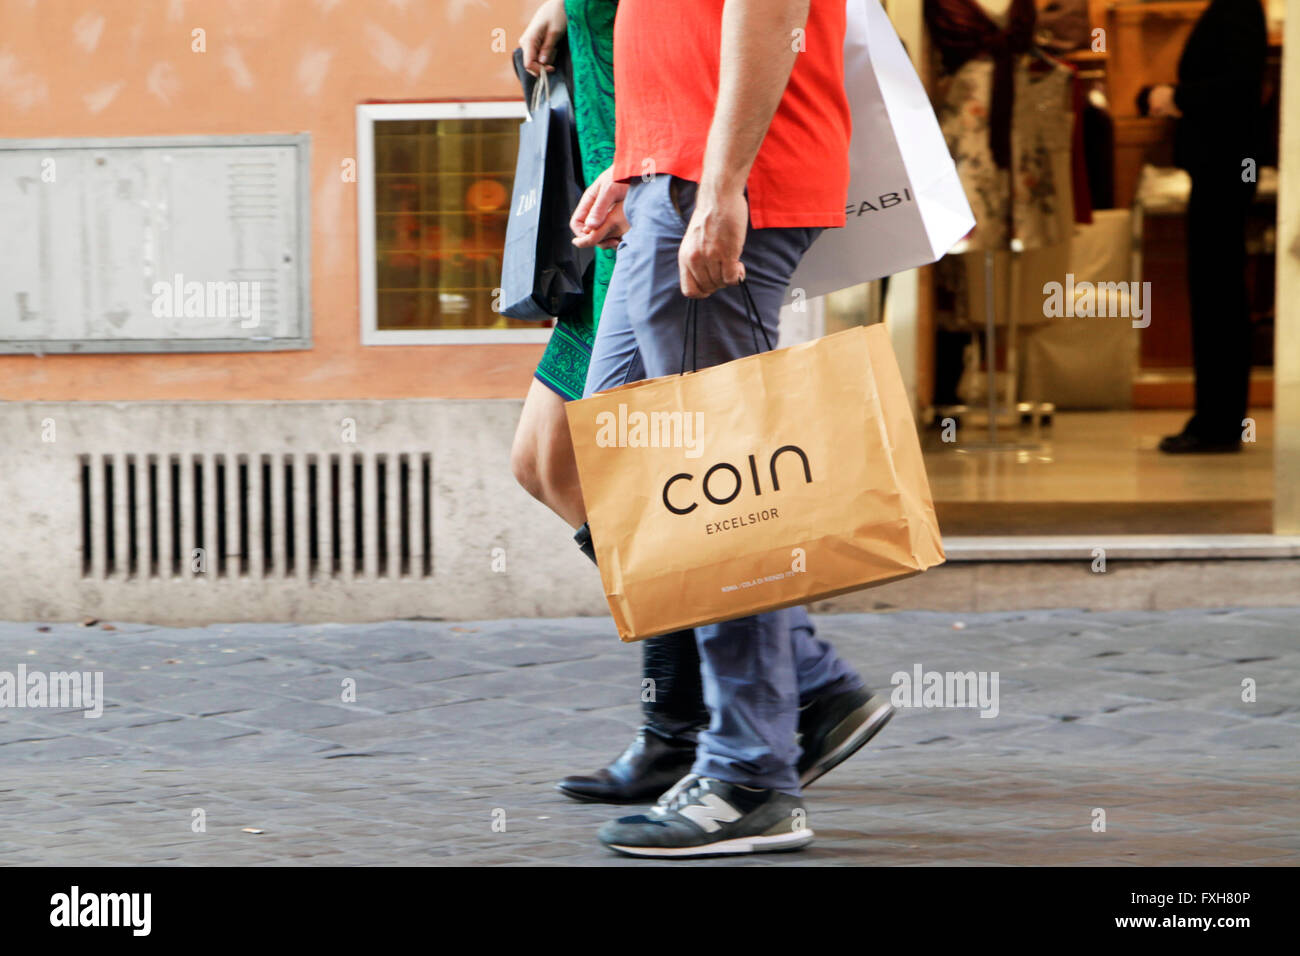 Pedestrian walks with his Coin shopping bag in the center of Rome, Italy - Stock Image